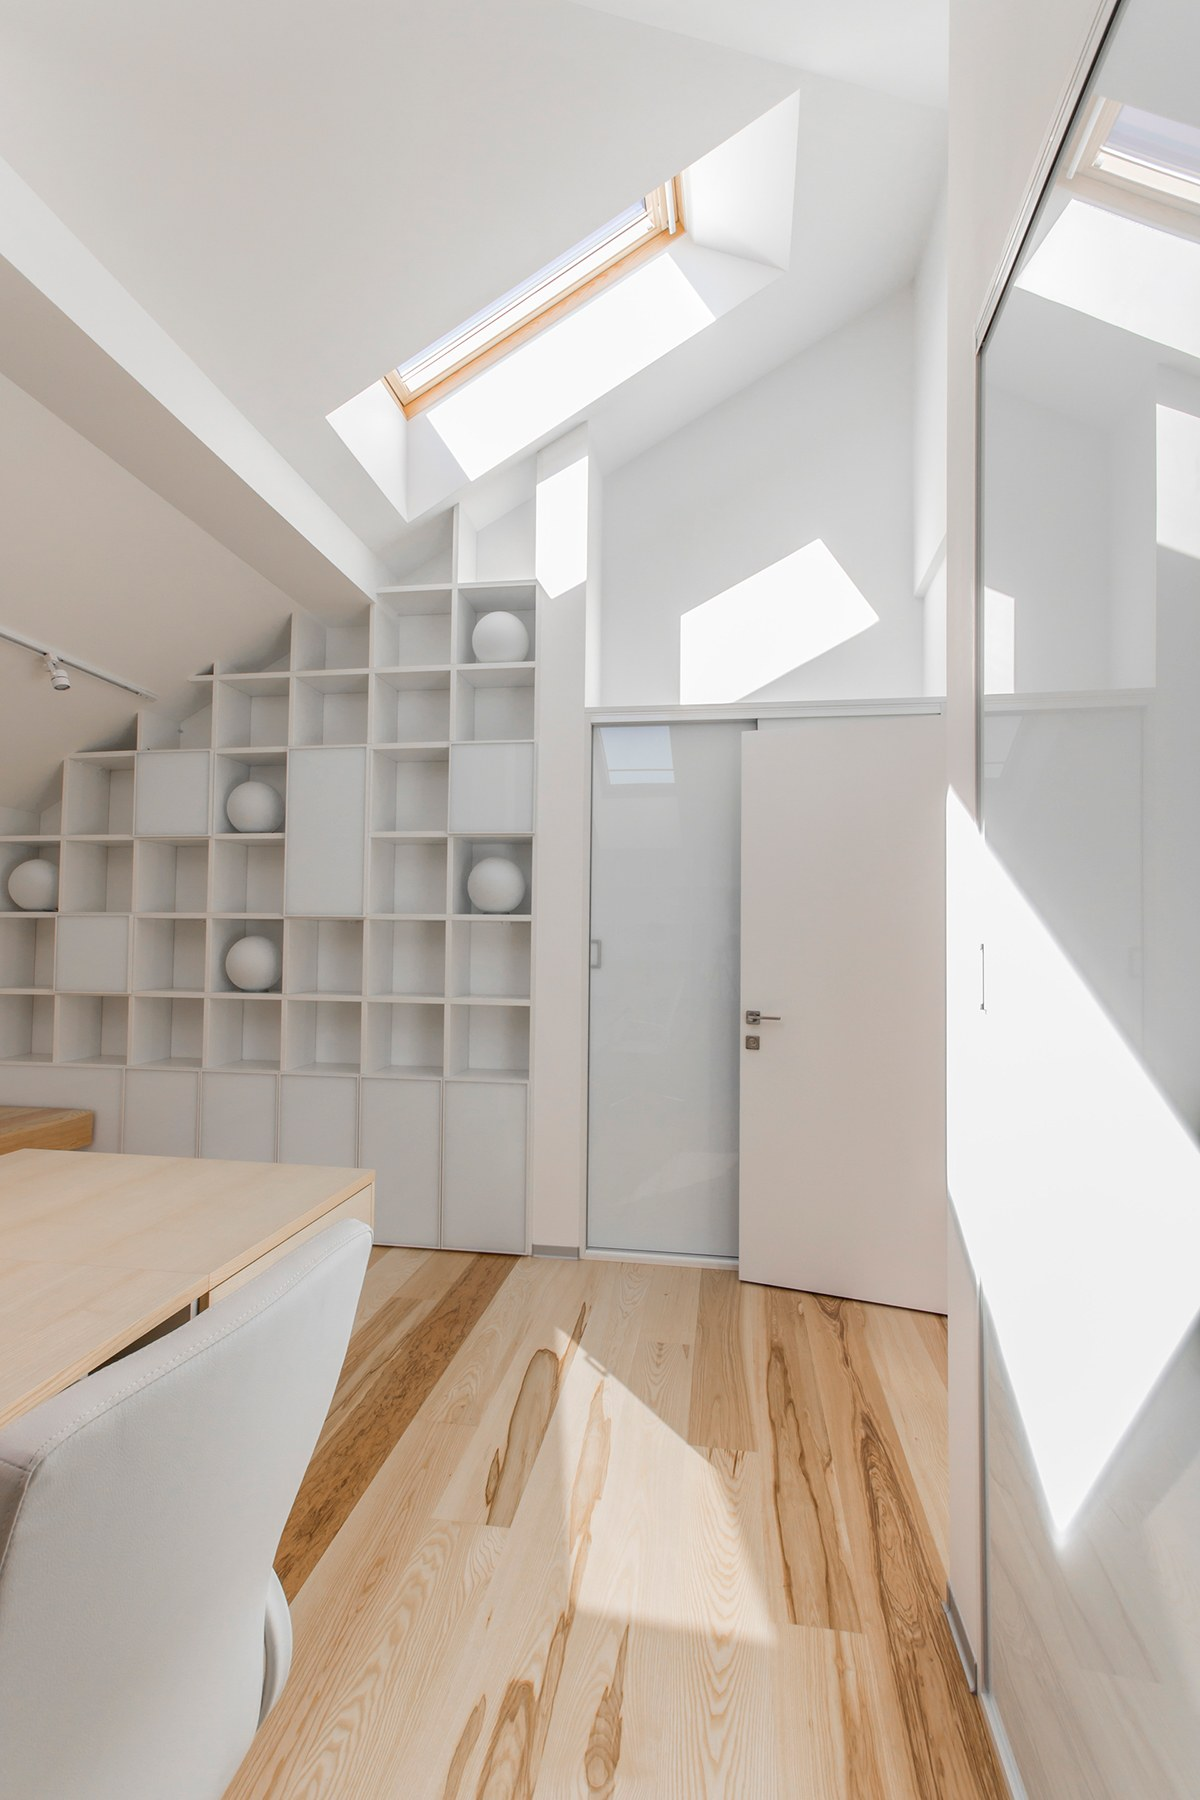 Cubby Book Shelf Decoration - A kid friendly apartment renovation by ruetemple architects